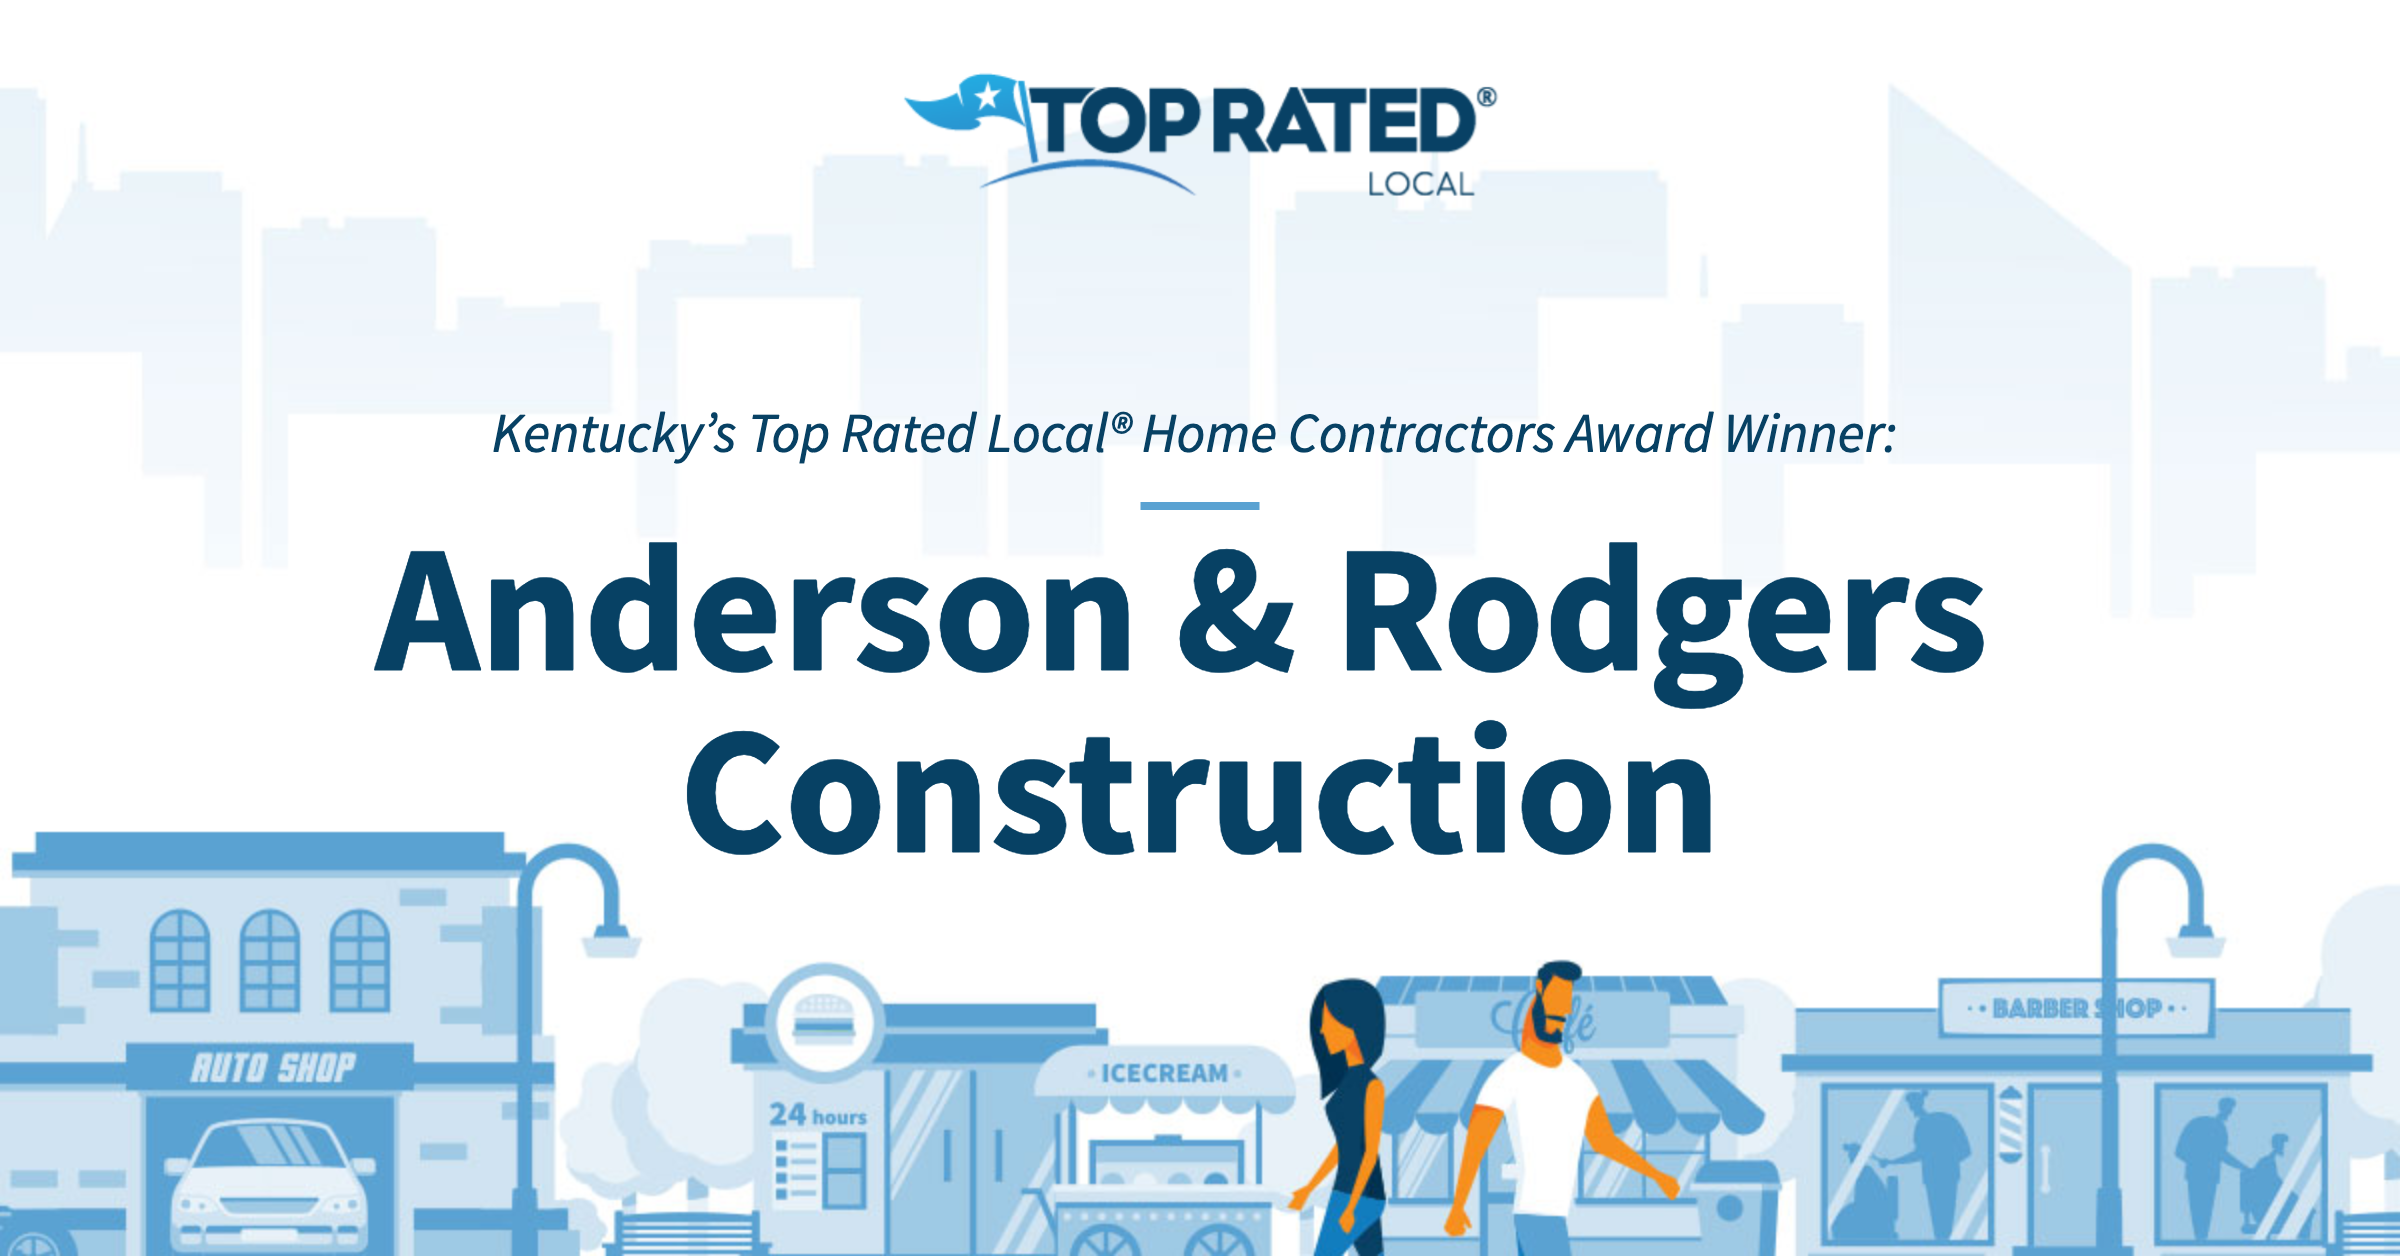 Kentucky's Top Rated Local® Home Contractors Award Winner: Anderson & Rodgers Construction